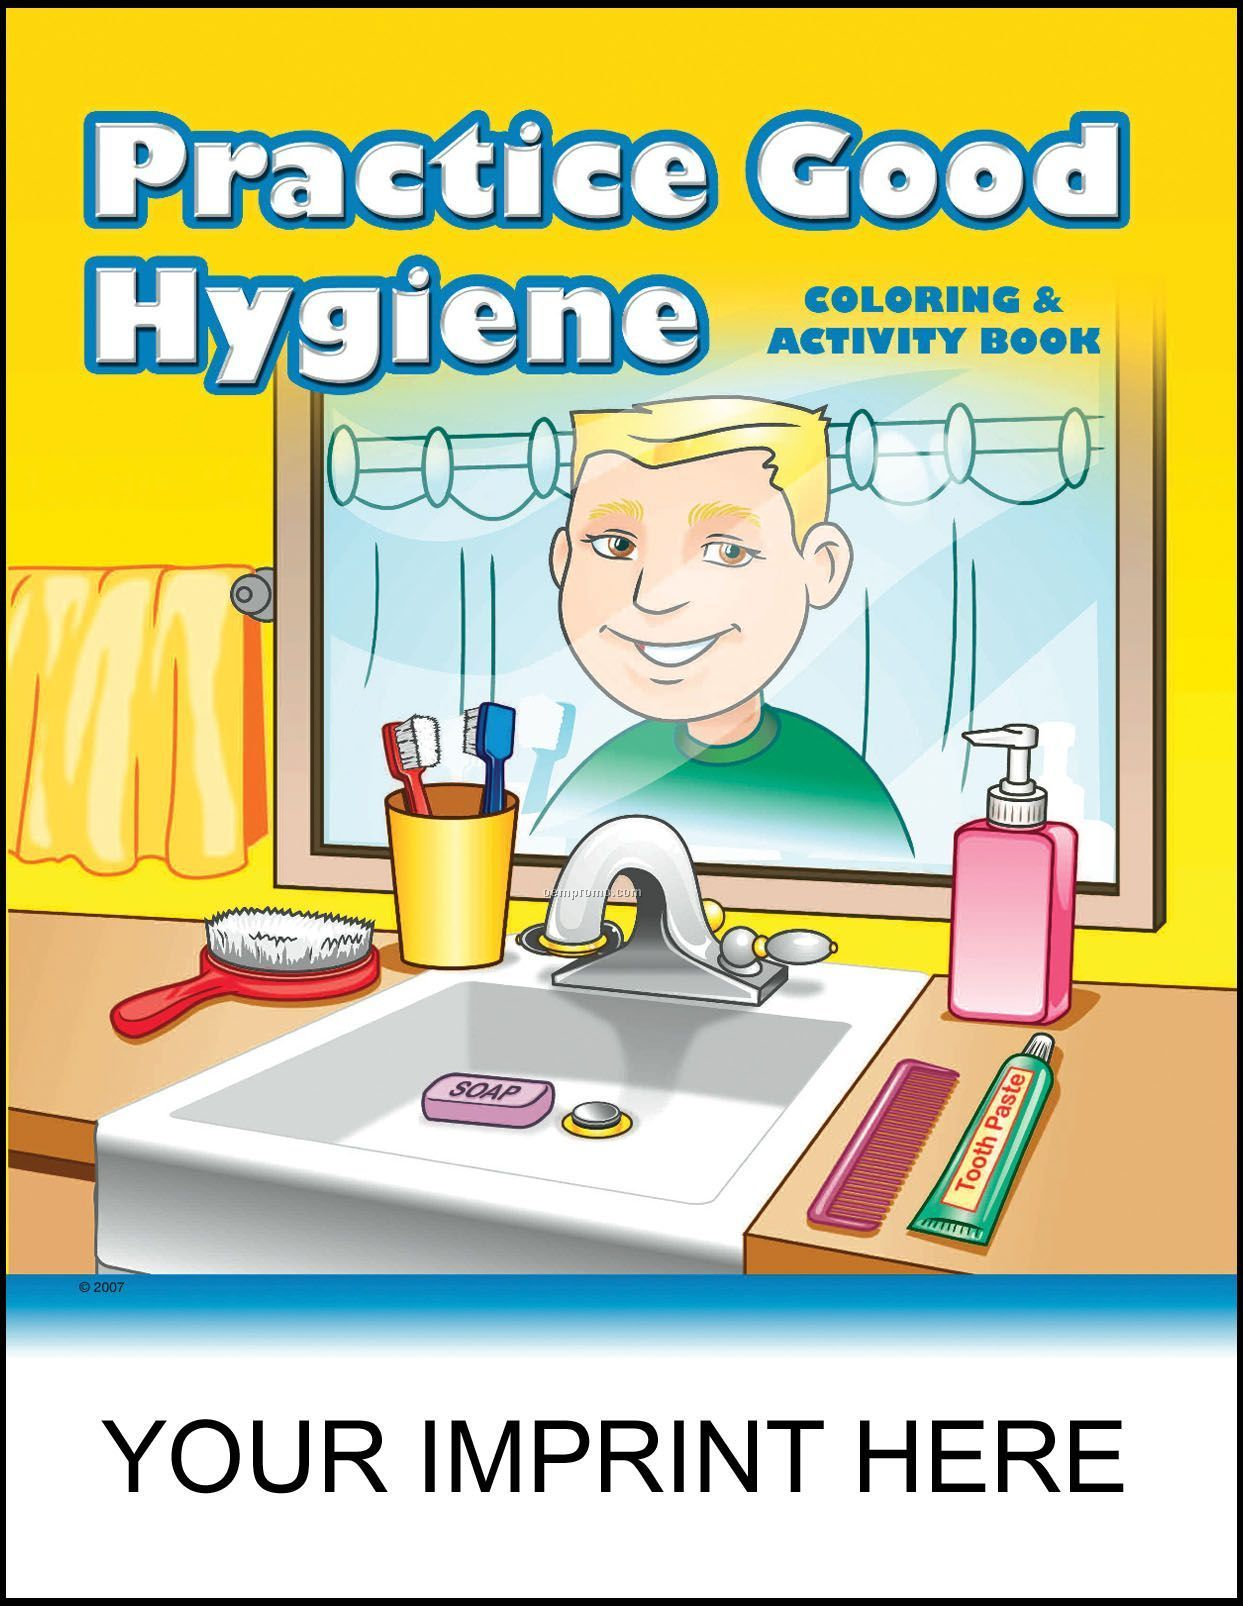 Practice Good Hygiene Coloring & Activity Book